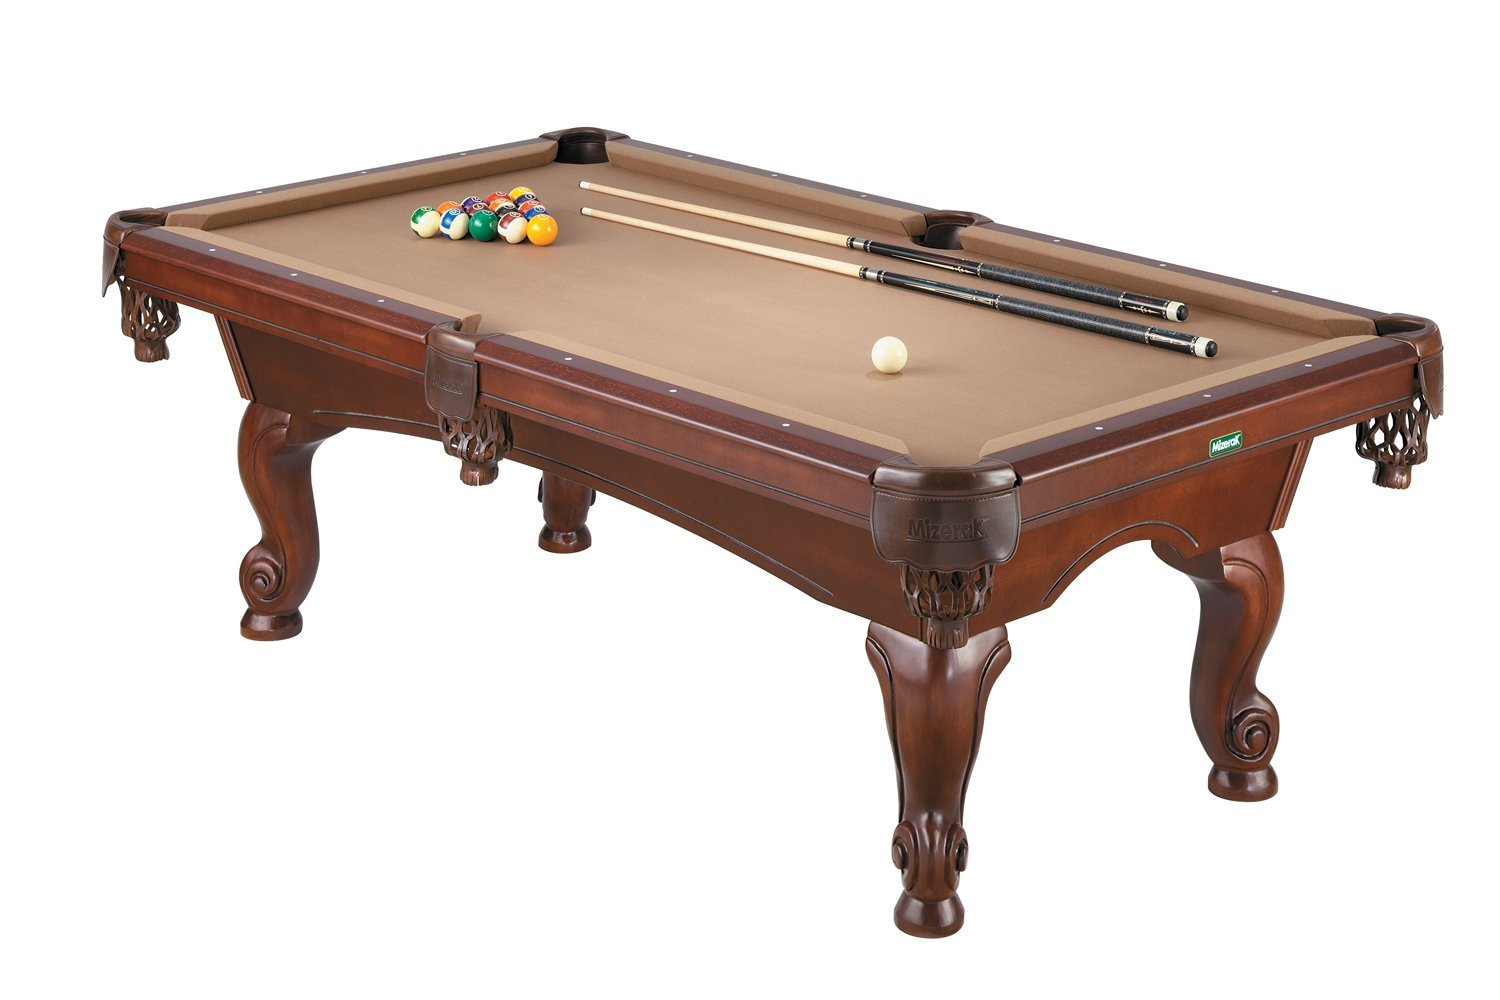 Mizerak P1373TW Victoria II 7-Foot Billiard Table